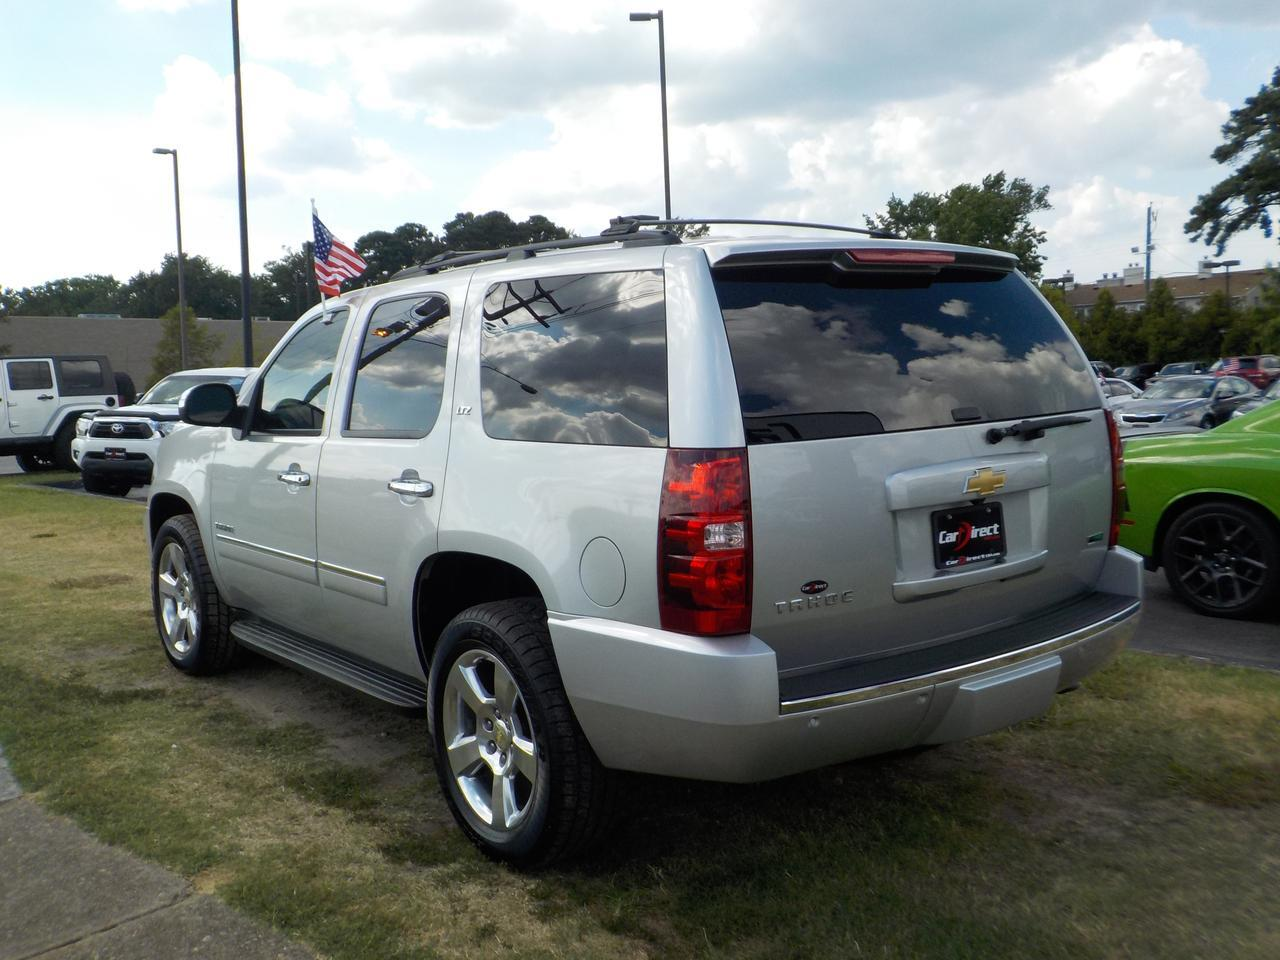 2011 CHEVROLET TAHOE LTZ 4X4, LEATHER, NAV, DVD PLAYER, HEATED/COOLED SEATS, 3RD ROW, BACKUP CAM, PARKING SENSORS! Virginia Beach VA